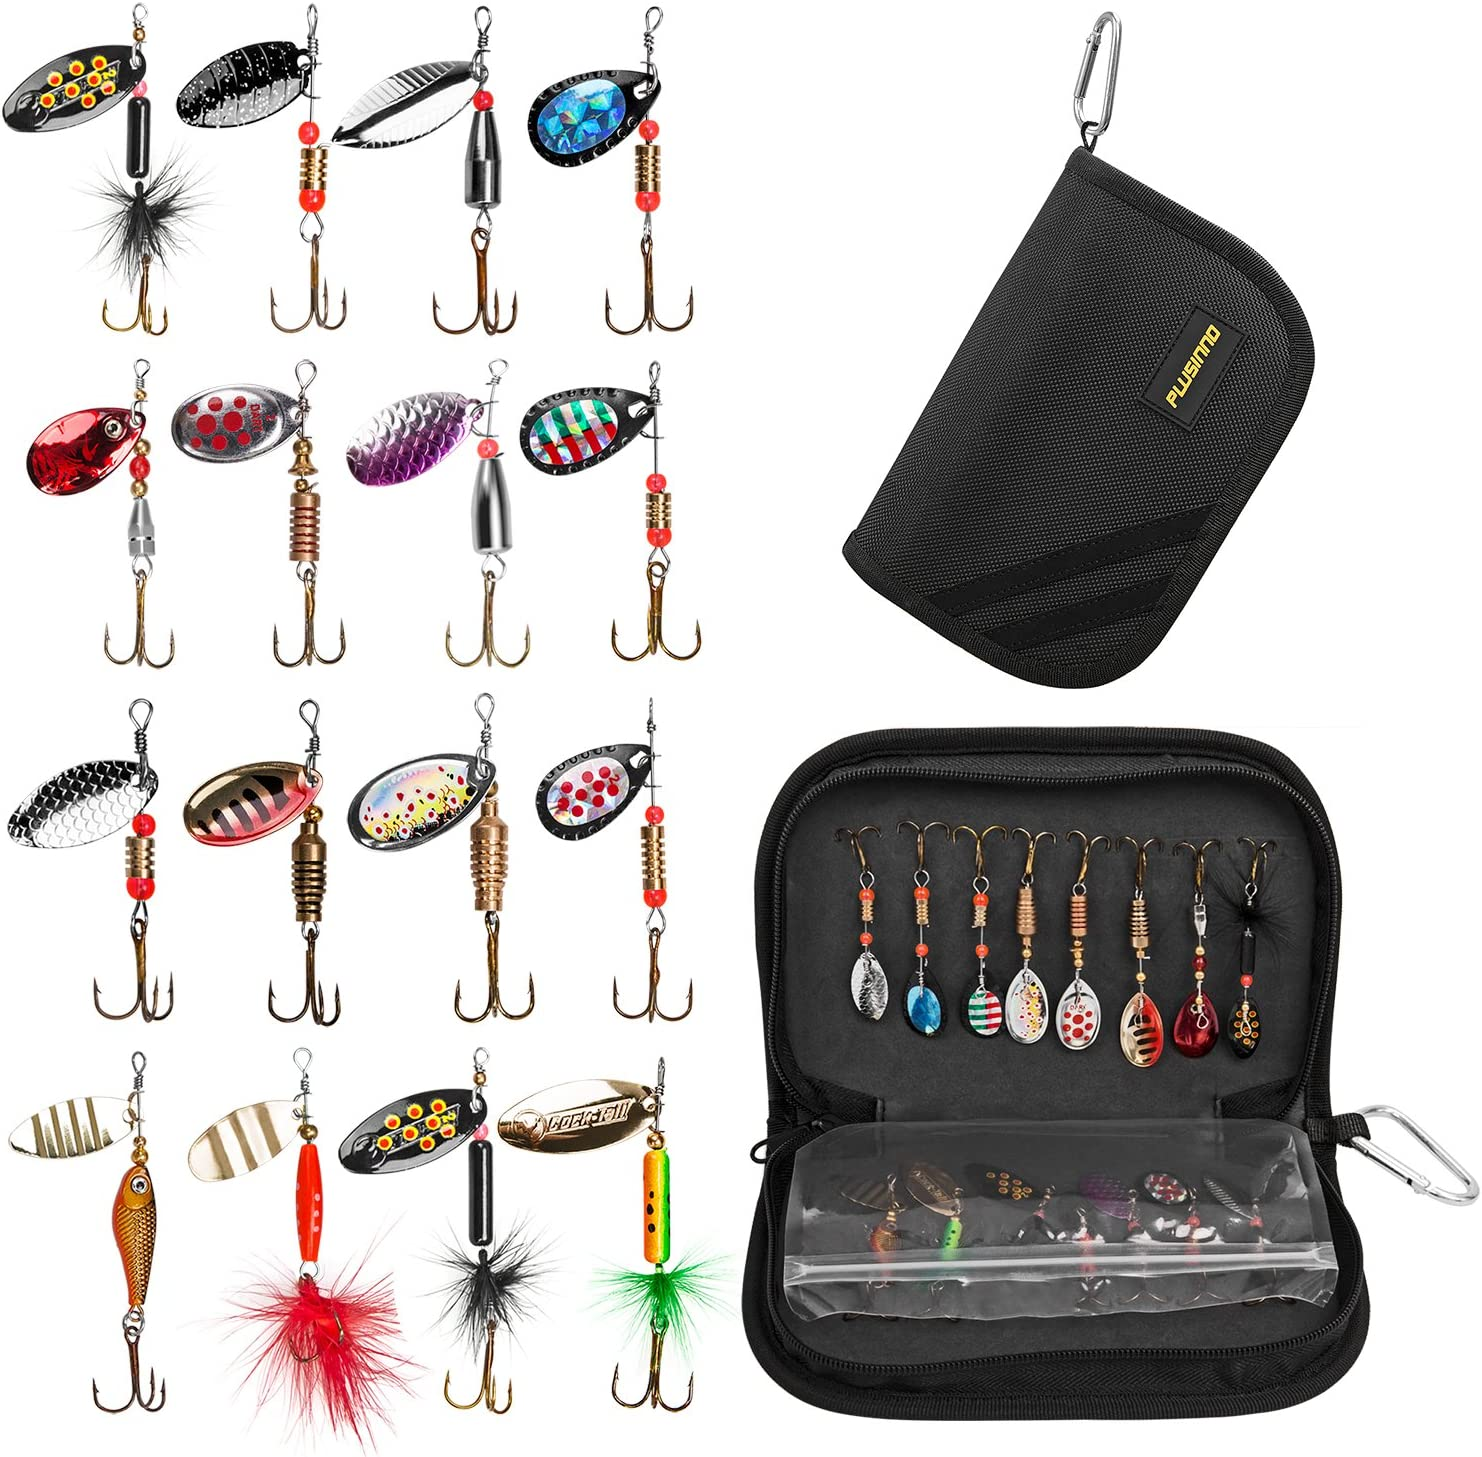 Plussino 16pc Spinner Lures with Portable Carrying Bag